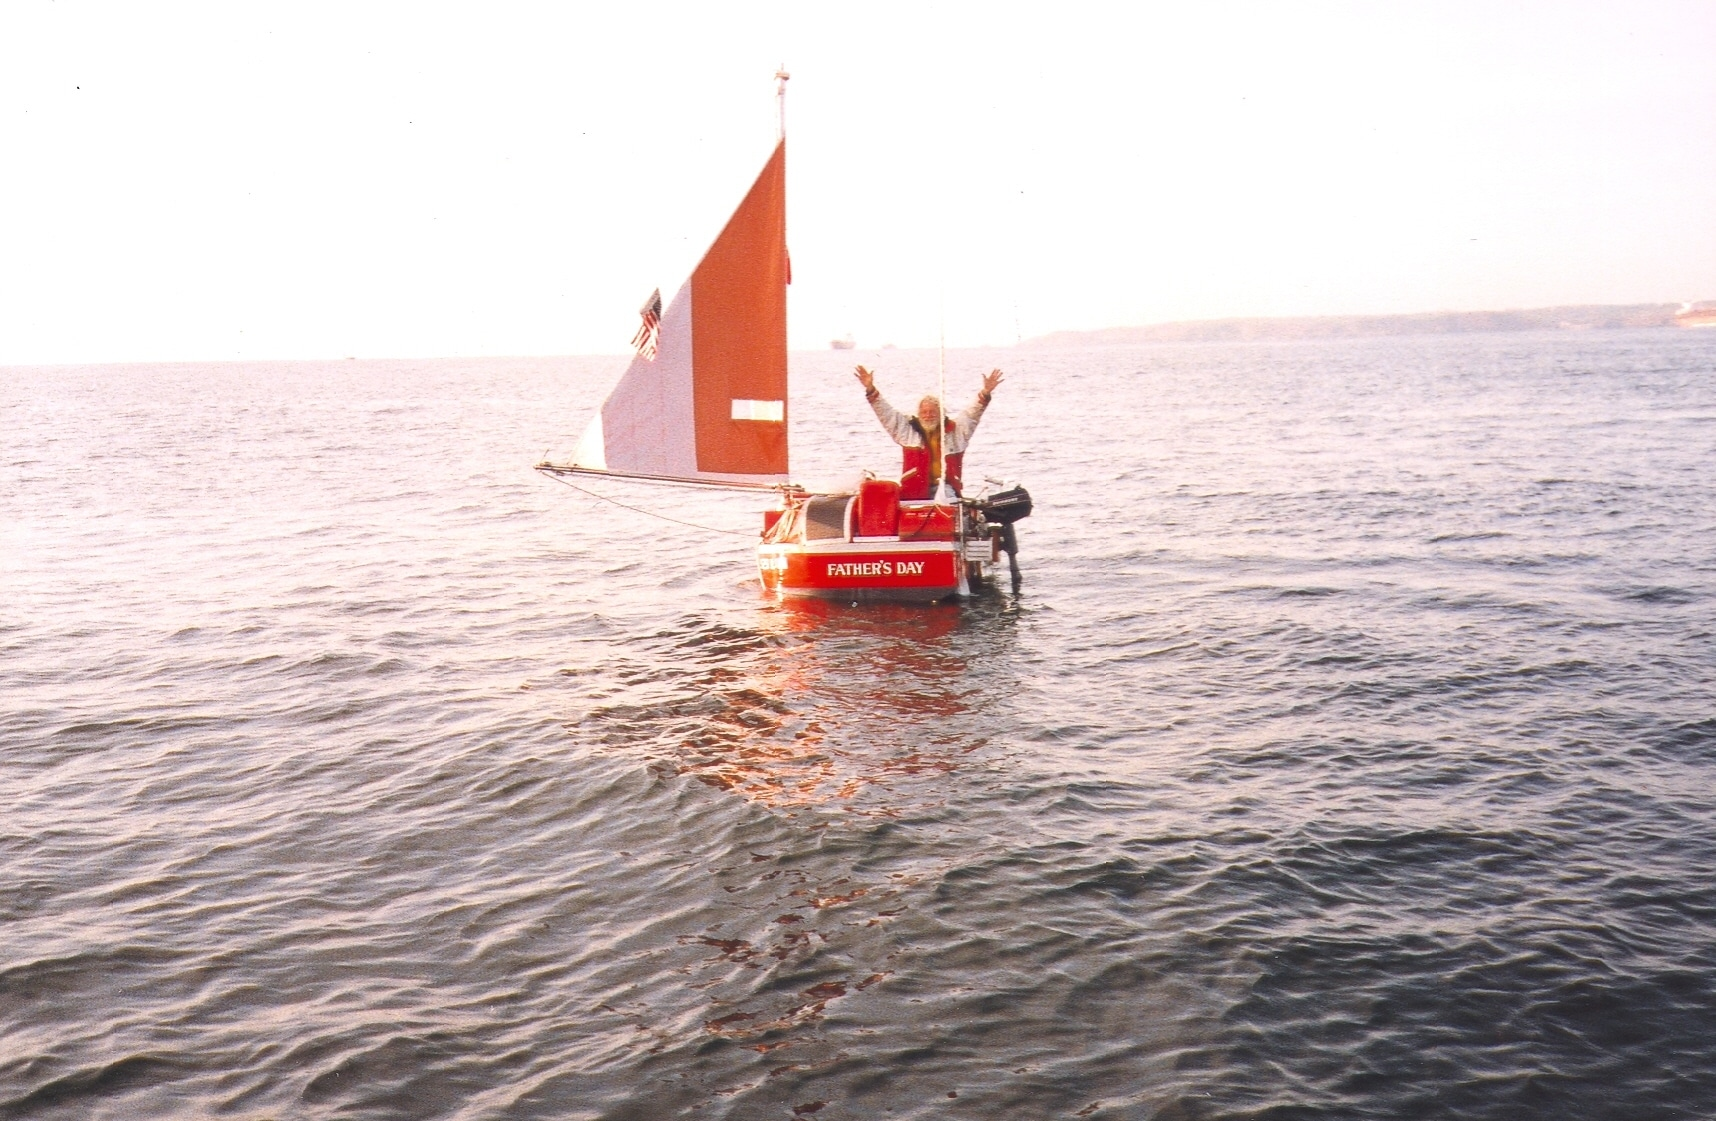 Father's Day smallest boat to cross the Atlantic